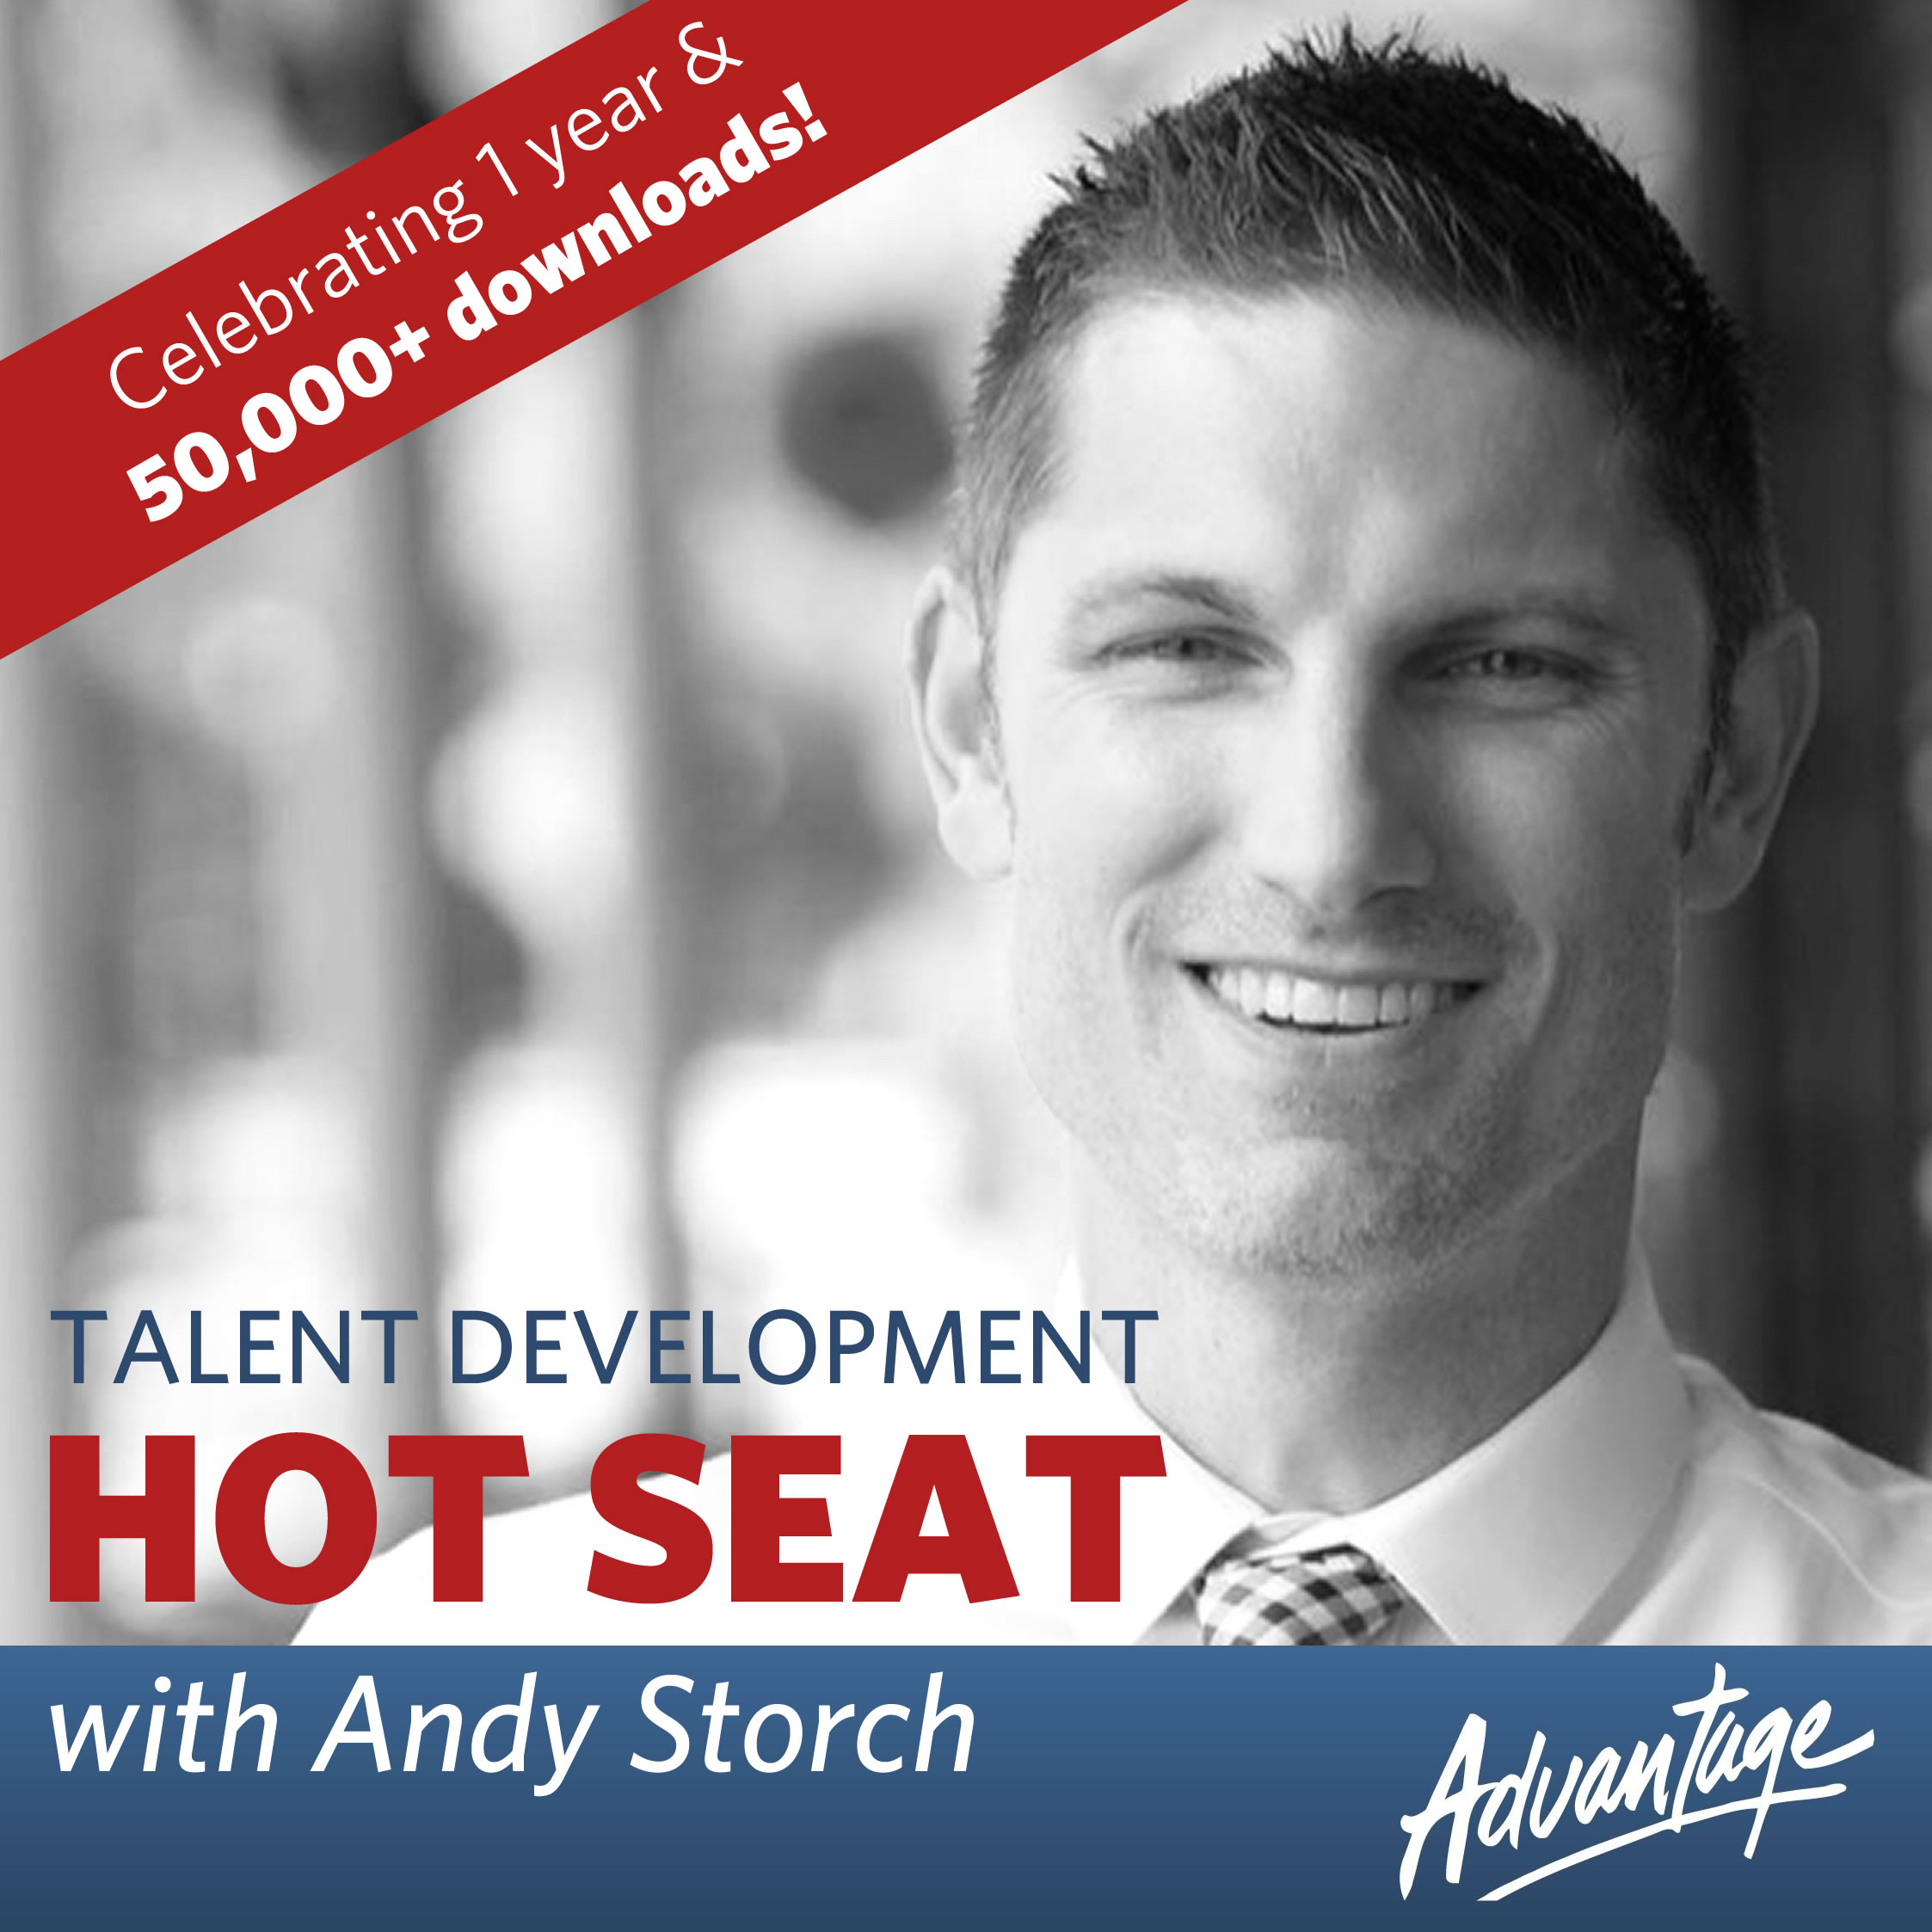 Talent Development Hot Seat podcast